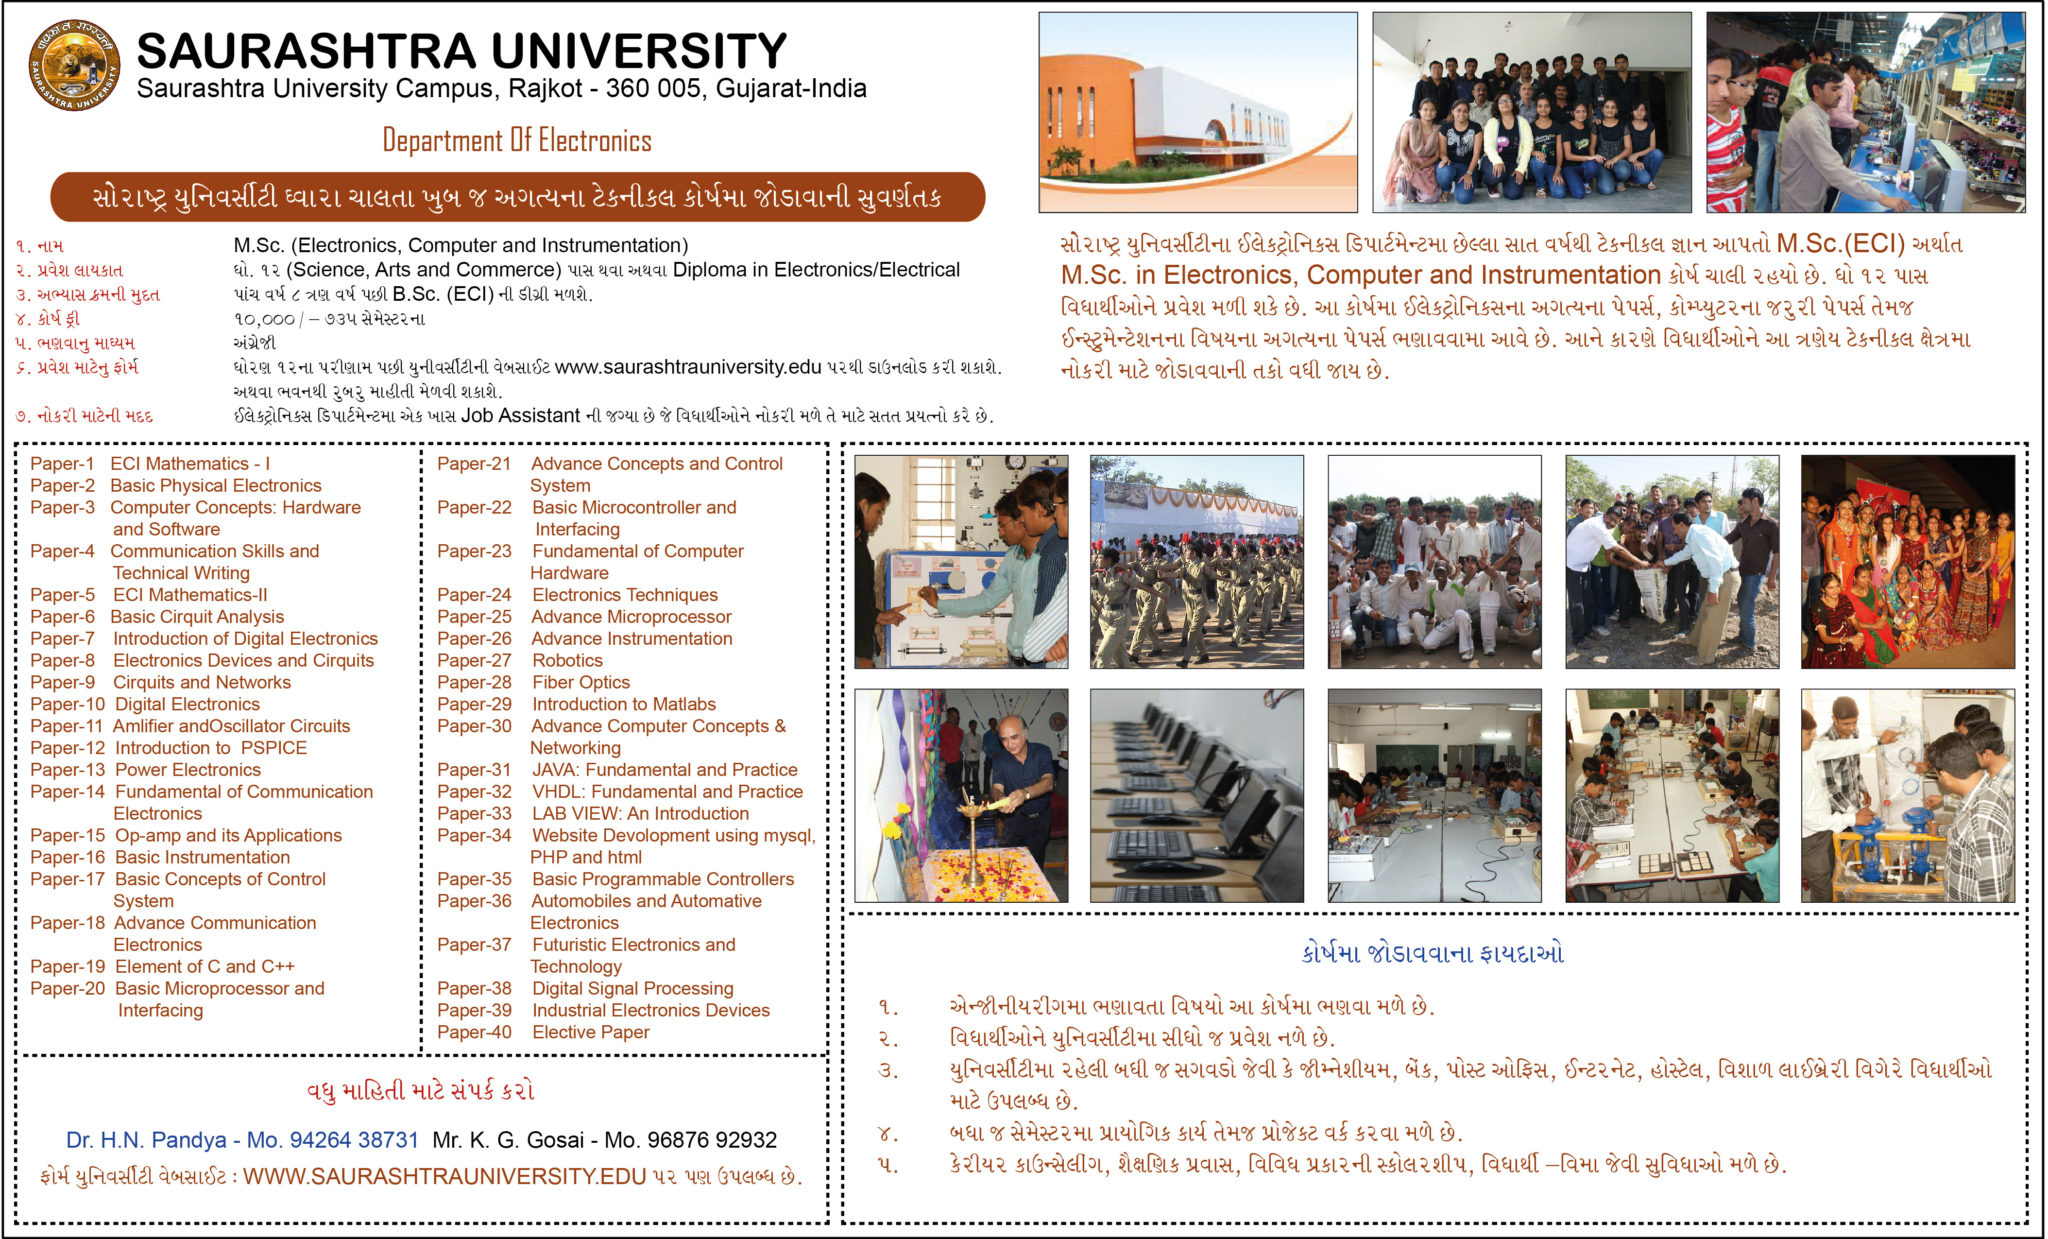 Saurashtra University Time Table 2019